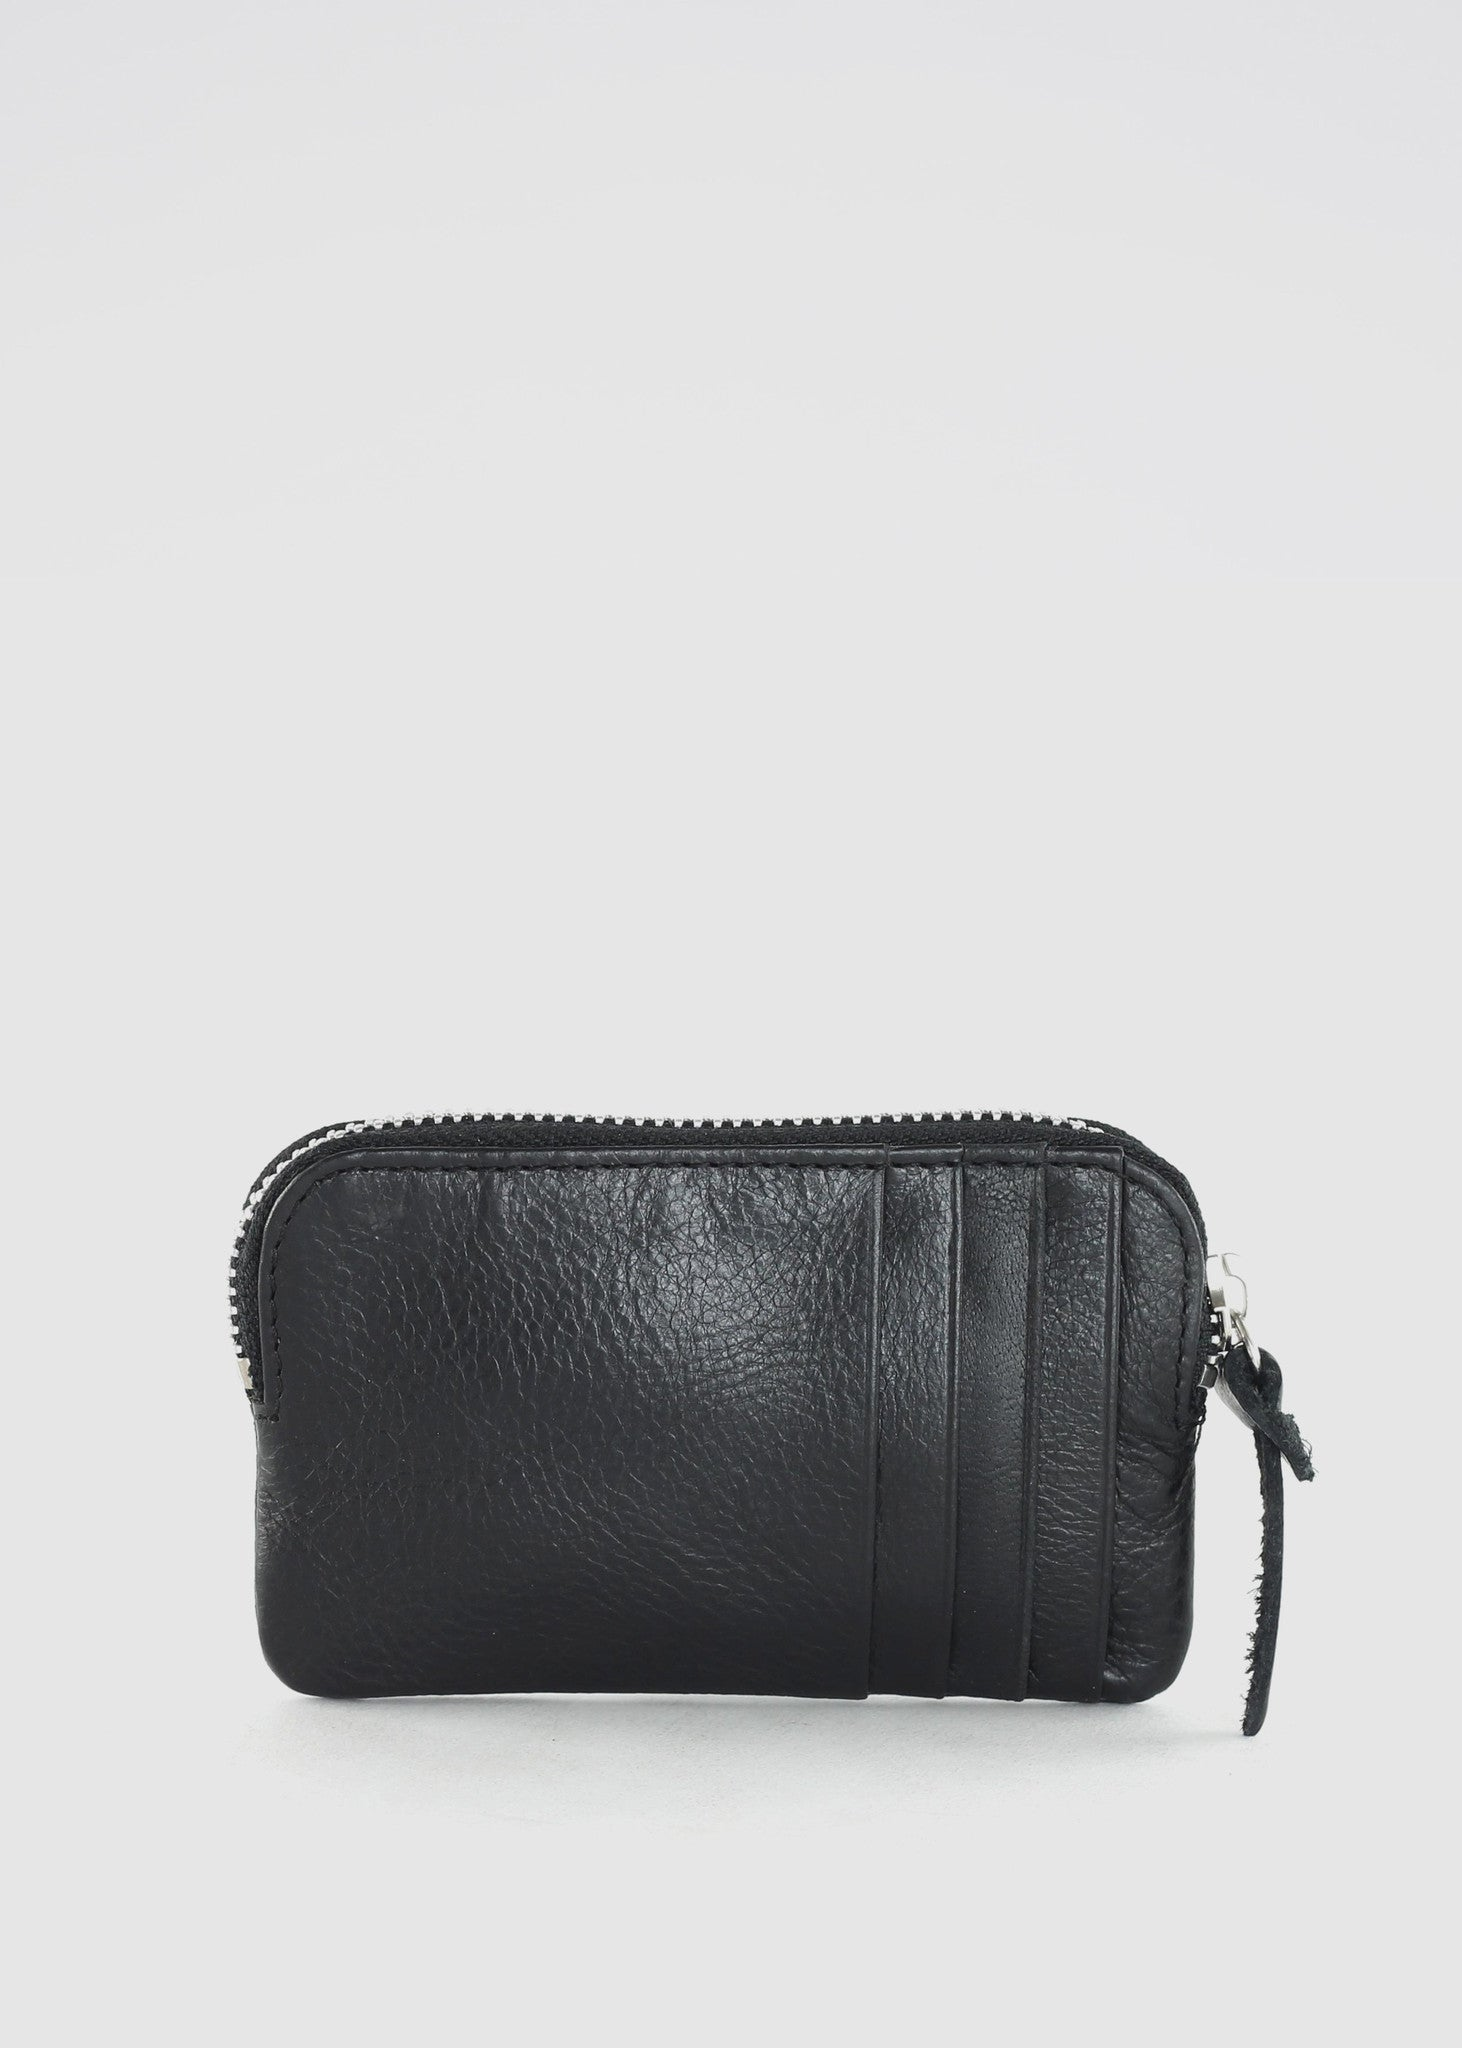 Aims To Wallet Black Royal Republiq Mens Wallets- someplace